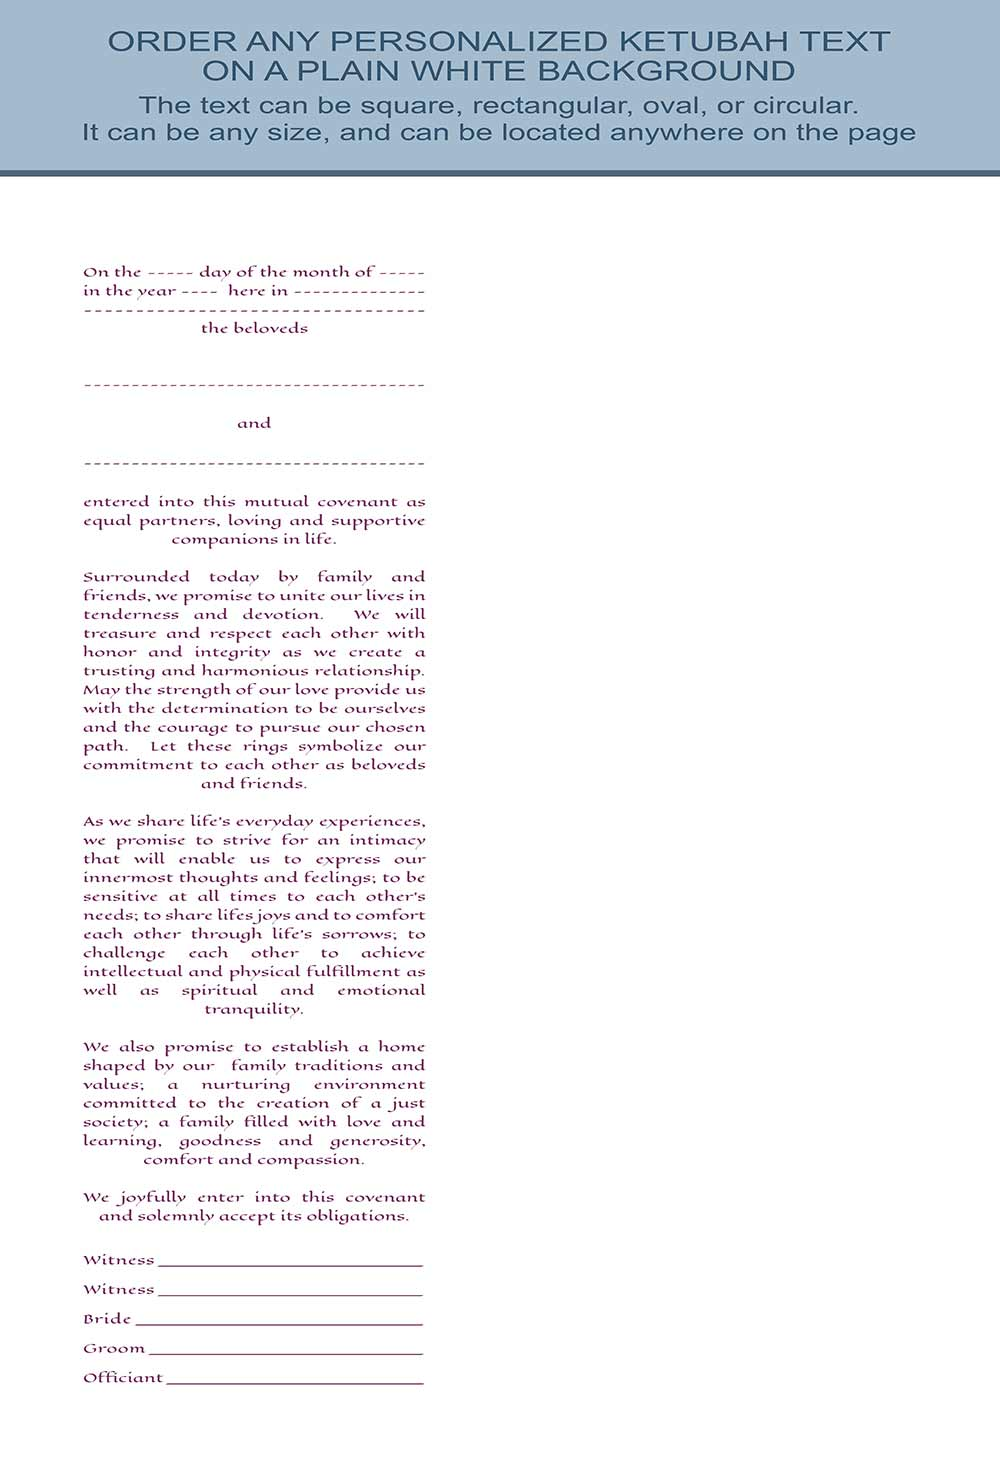 GK-33f Simple Text Only Ketubah NARROW TEXT